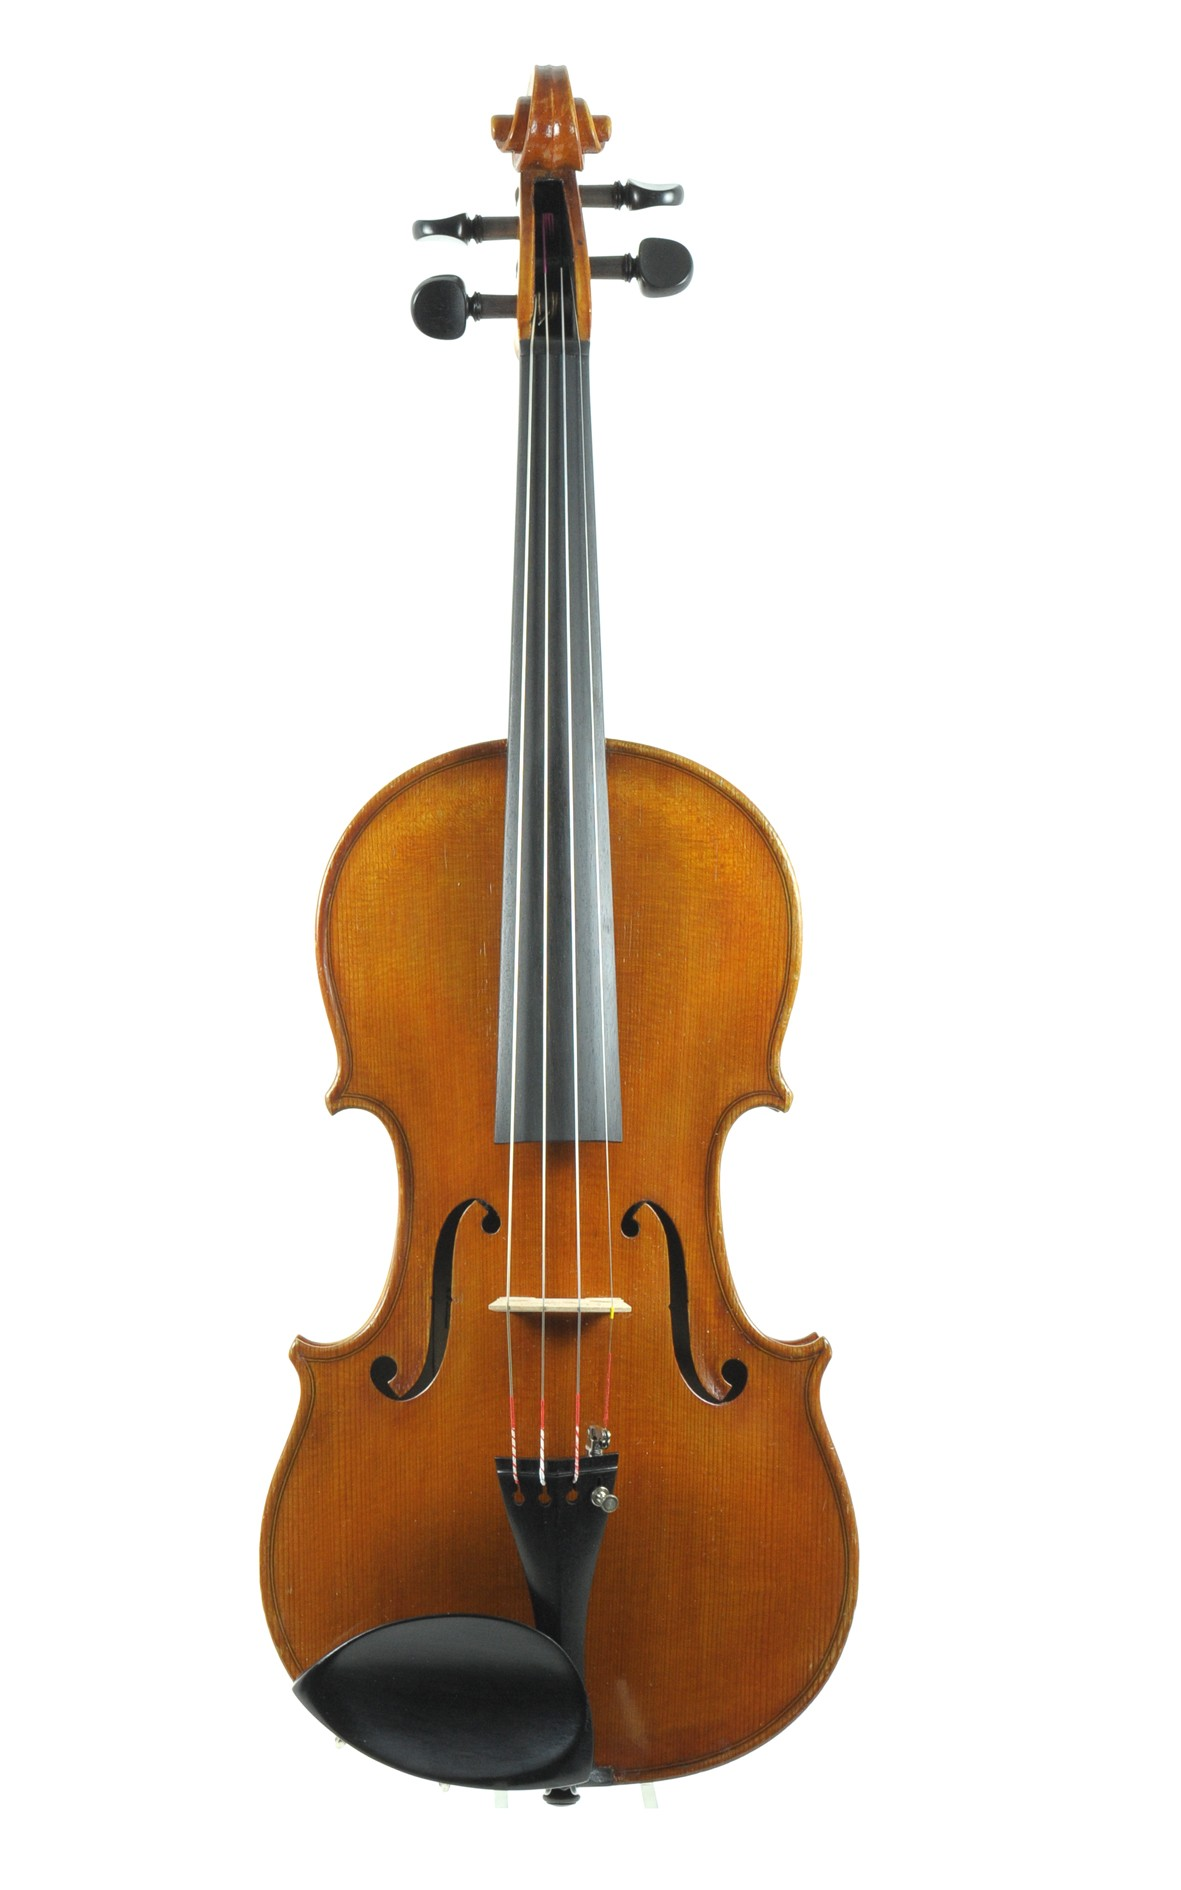 1954 master violin by W. Knorr